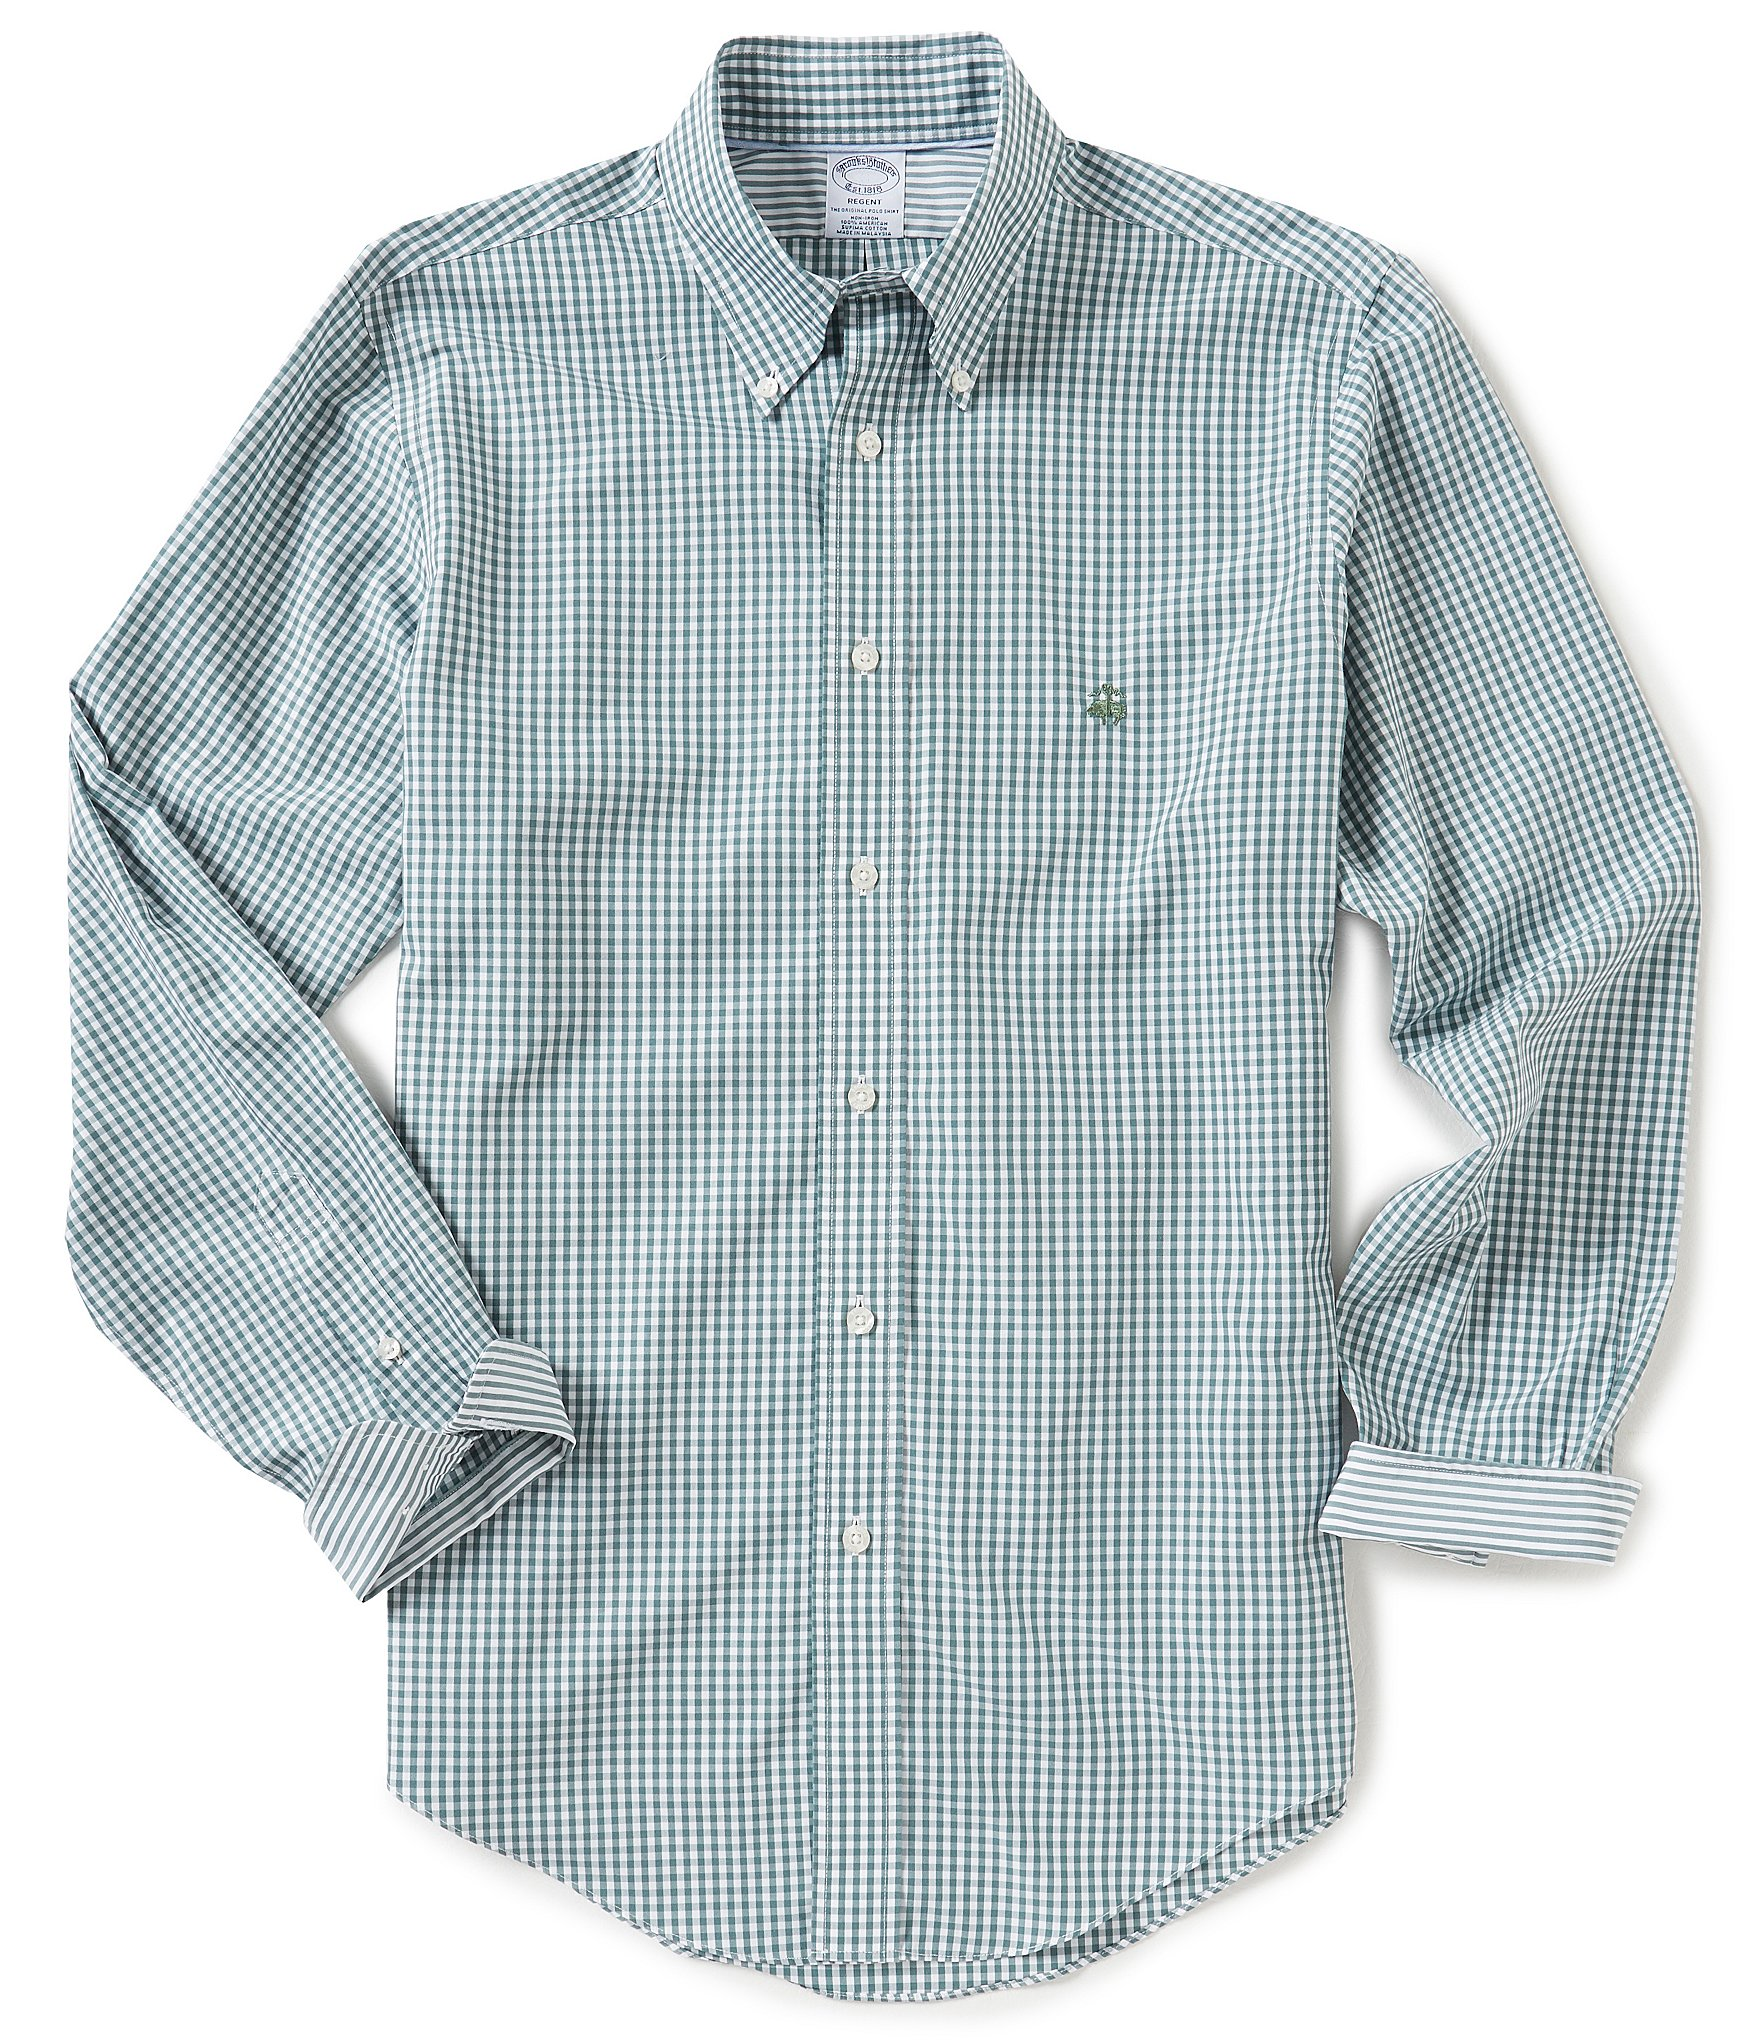 Brooks brothers non iron regent fit gingham long sleeve for Brooks brothers non iron shirt review